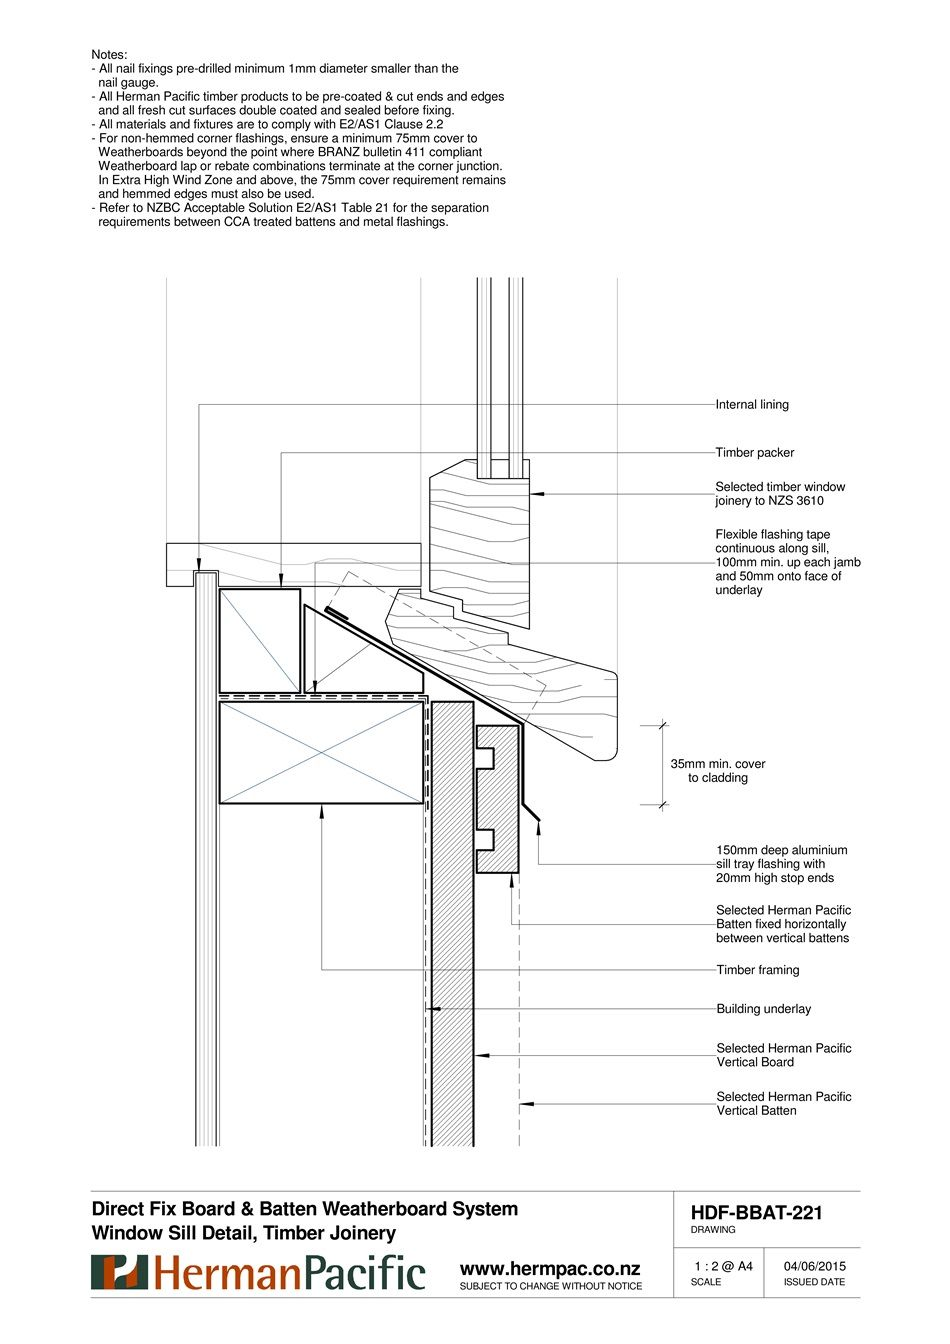 Pin By Roy On Architectural Details Architecture Details Timber Windows Construction Drawings